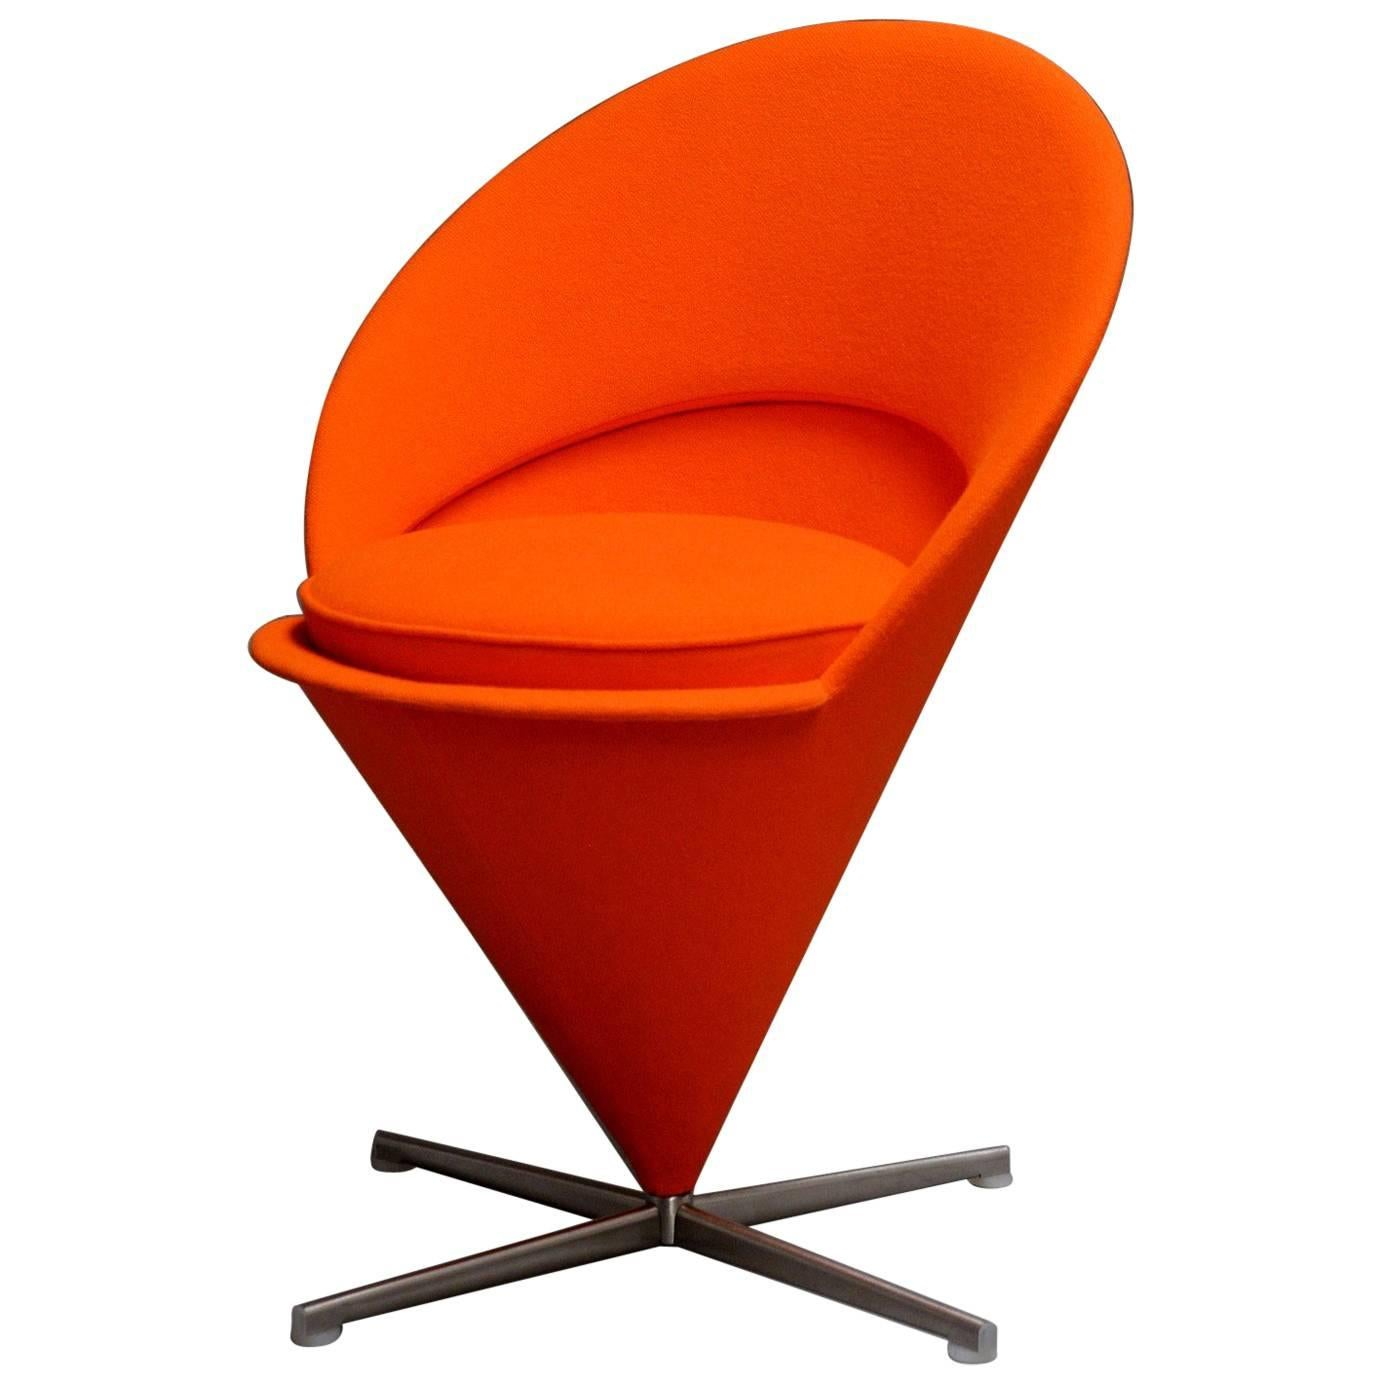 Attractive Verner Panton Organe Cone Chair